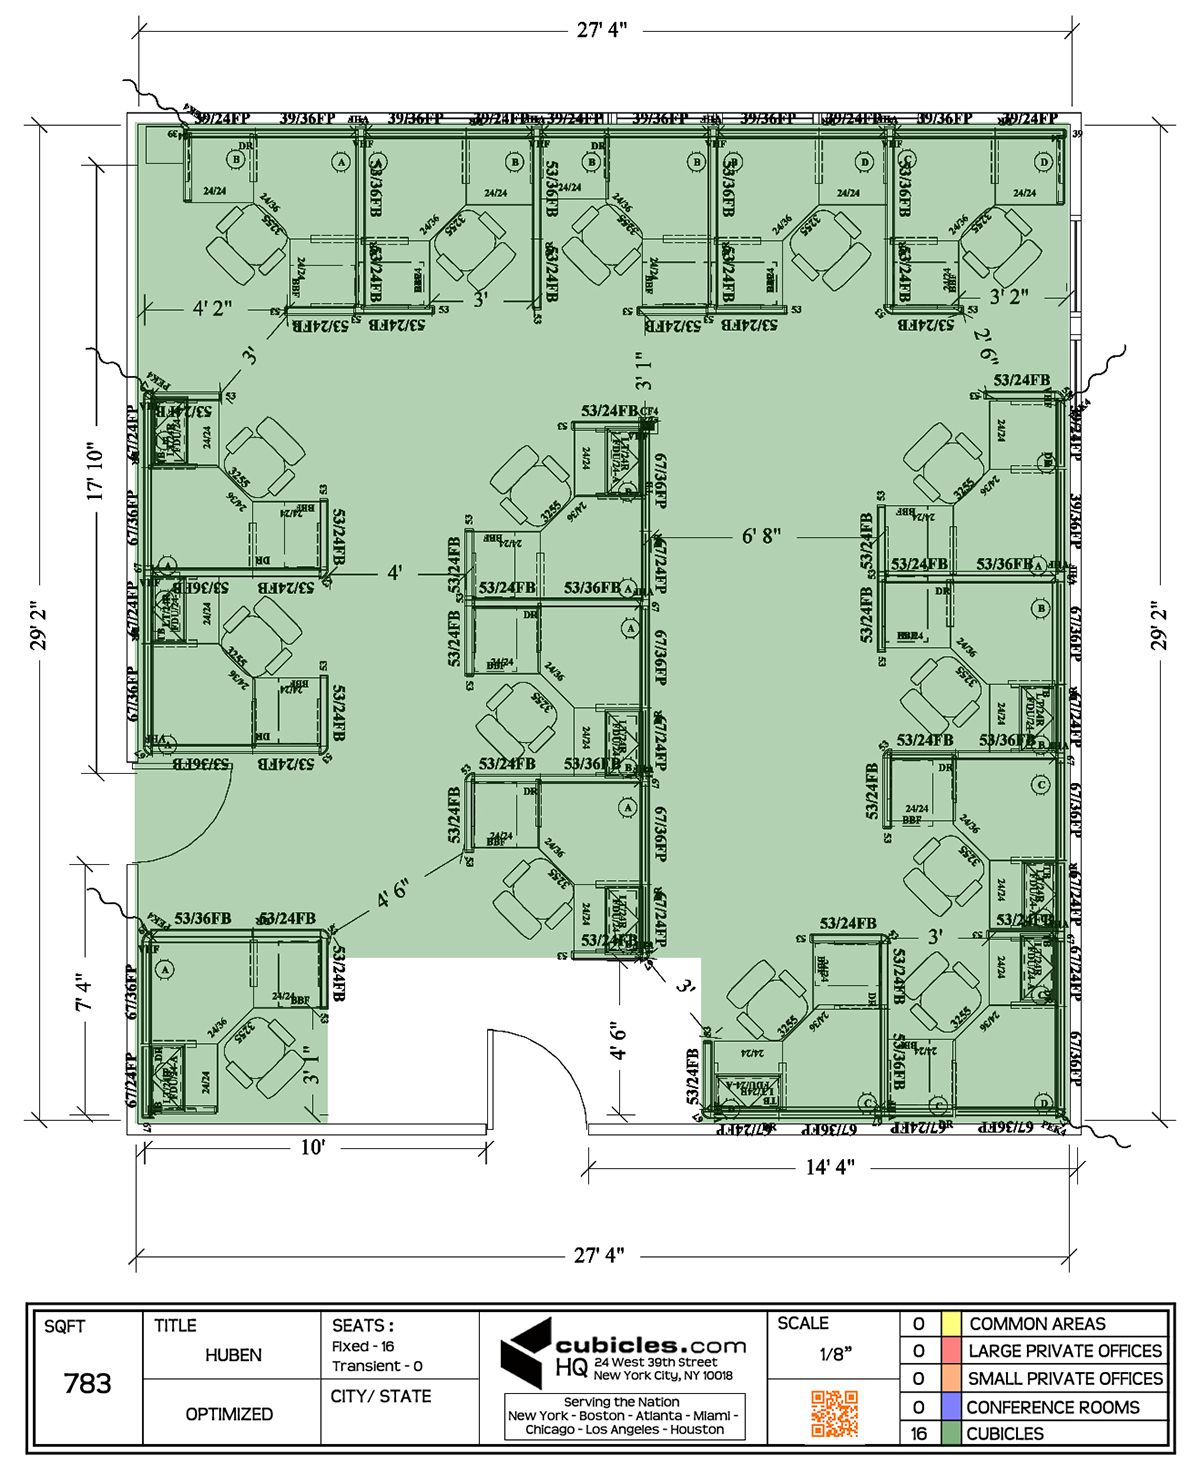 Office Floor Plan With 16 Workstations Cubiclelayout Office Floor Plan Office Space Planning Office Space Design